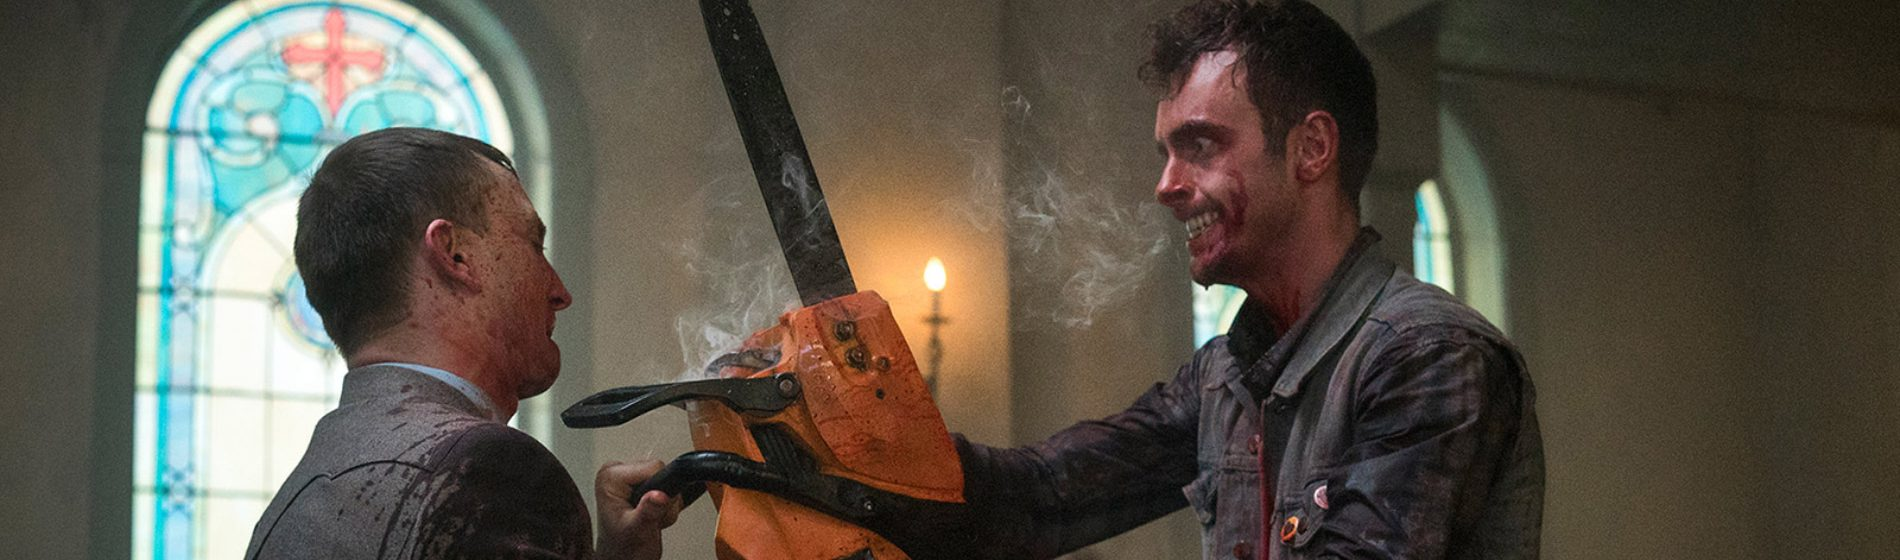 Preacher Chainsaw Fight